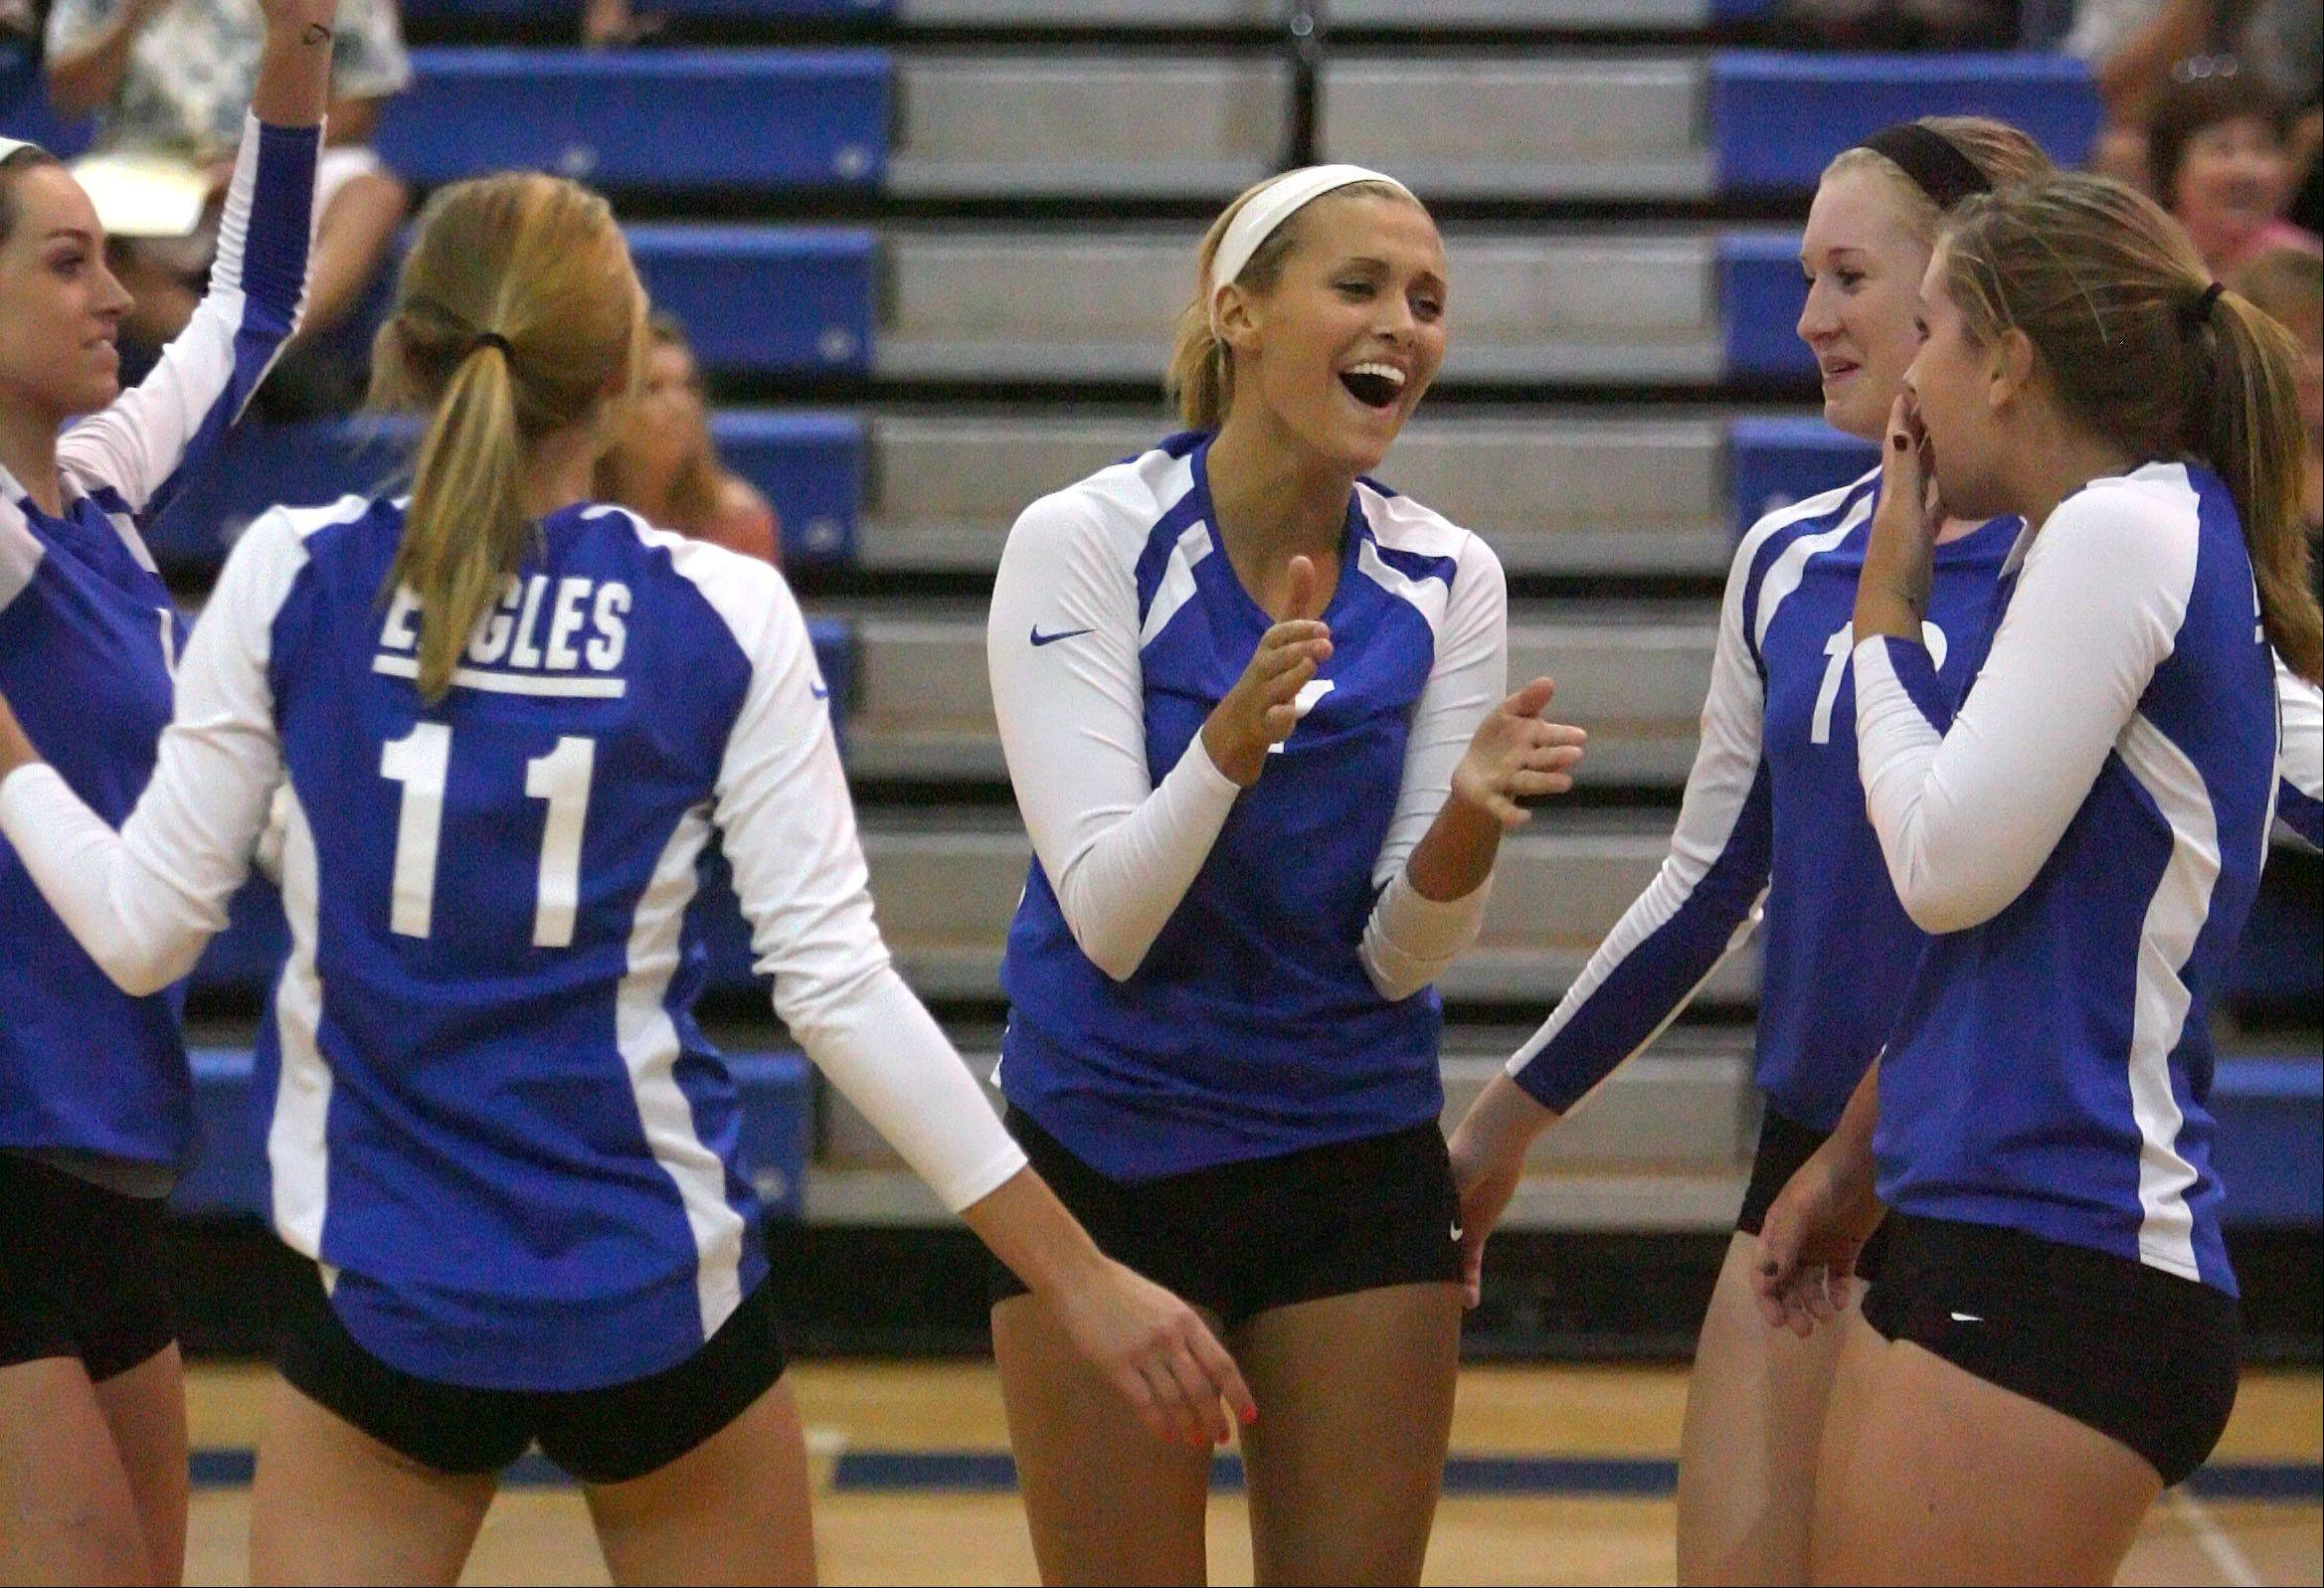 The Lakes girls volleyball team celebrates after beating Wauconda Tuesday night at Lakes High School.